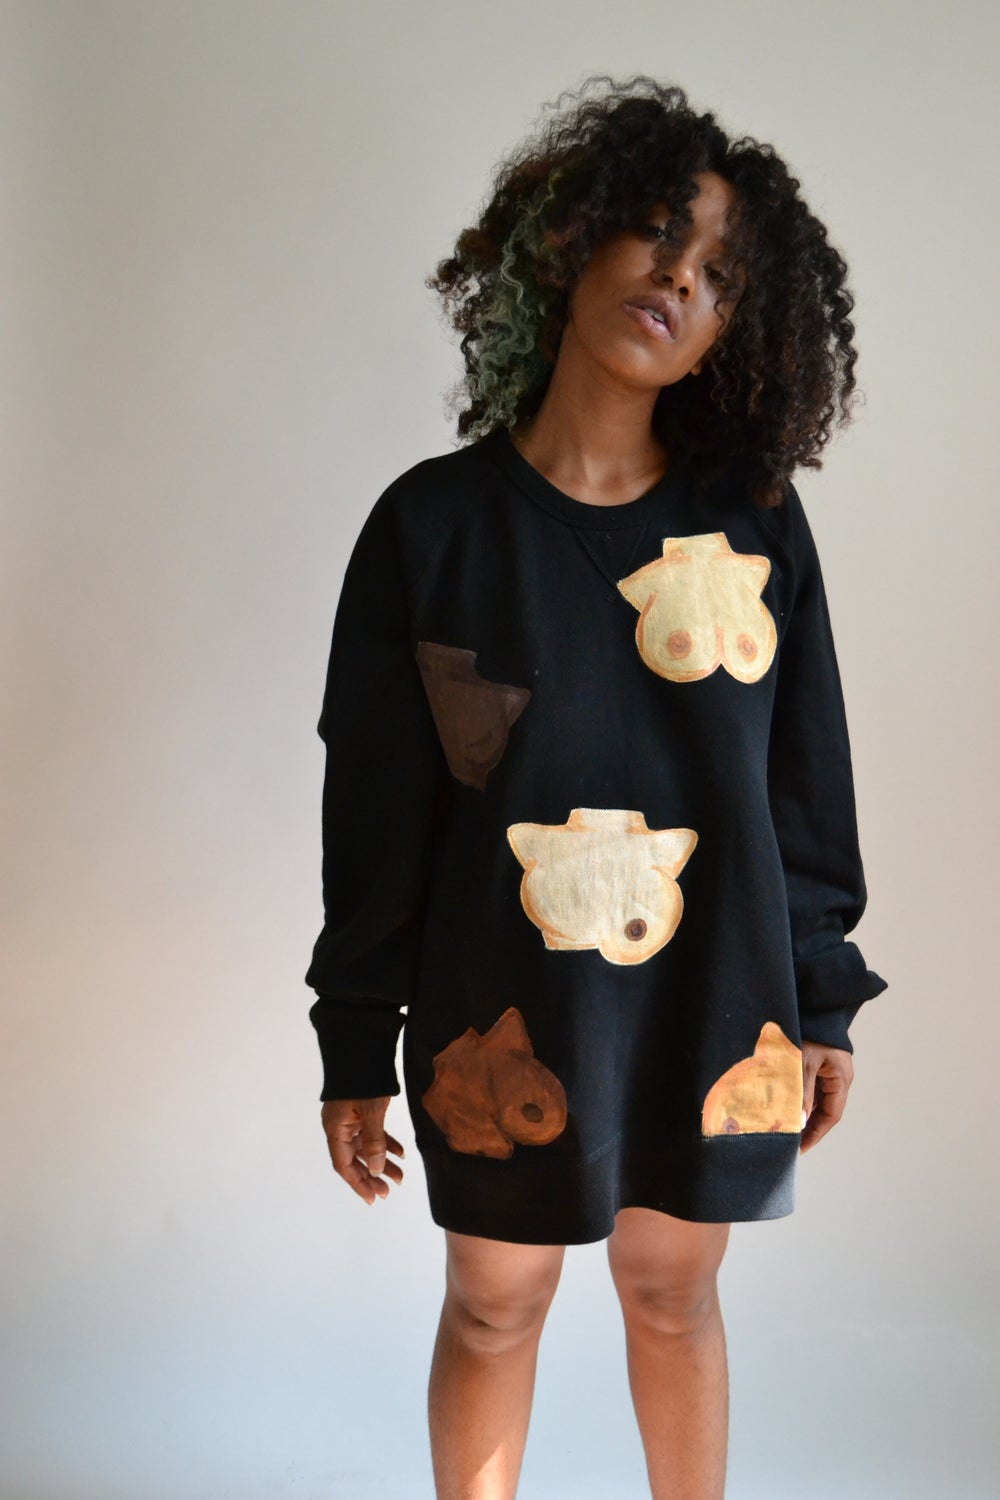 Image of Boobies Gang Crewneck Sweater (unisex)